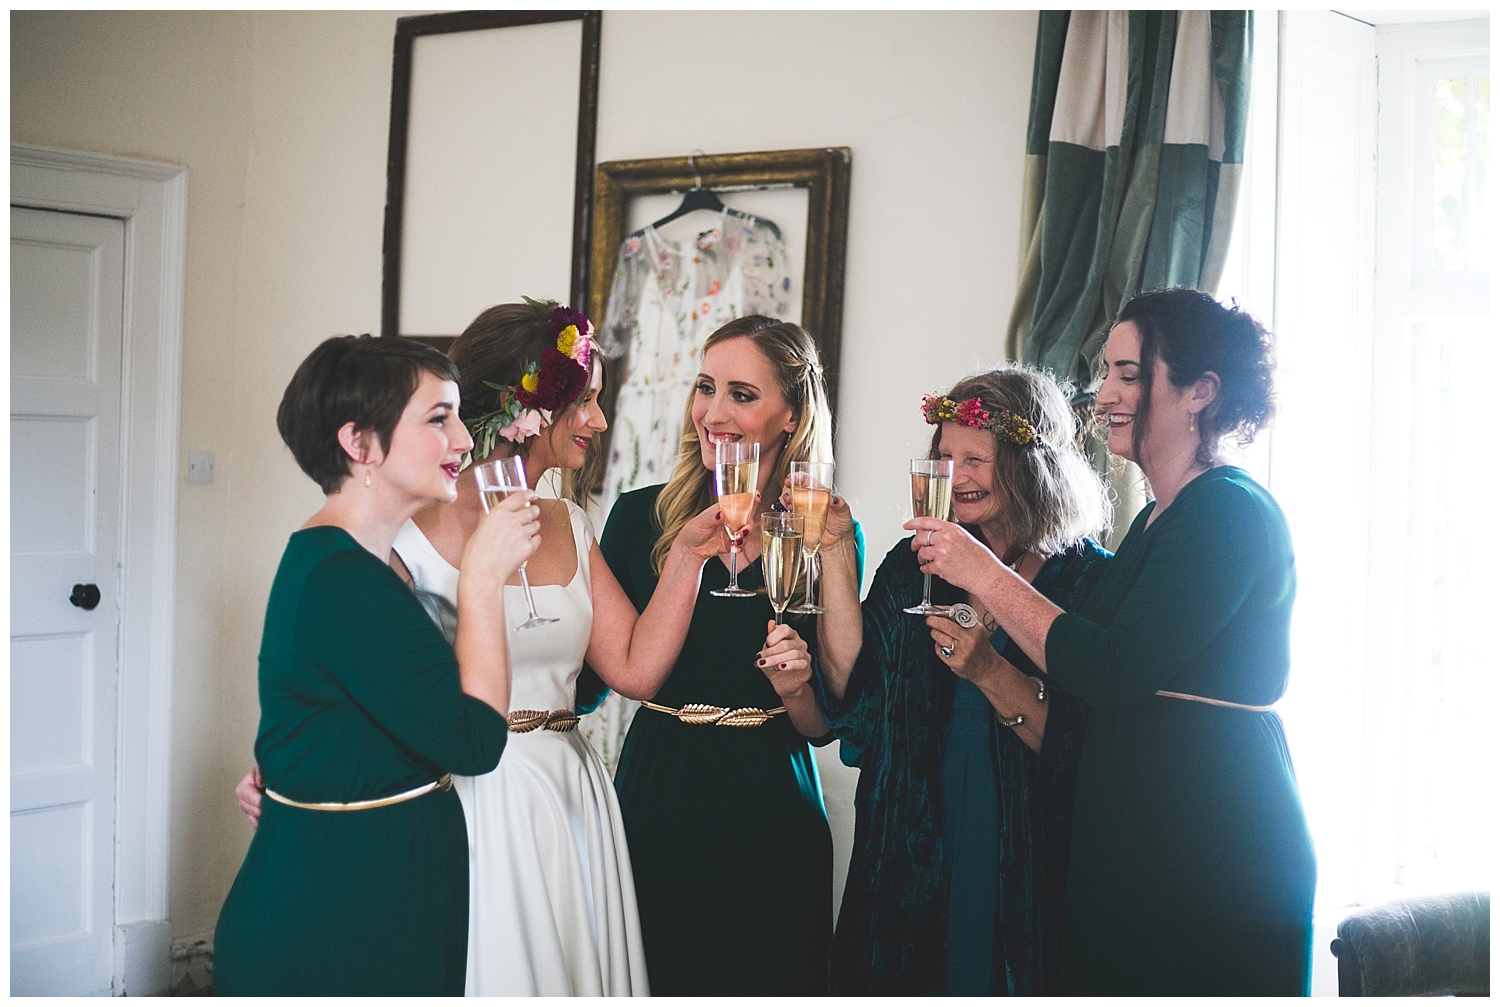 Bridesmaids and bride toasting with champagne